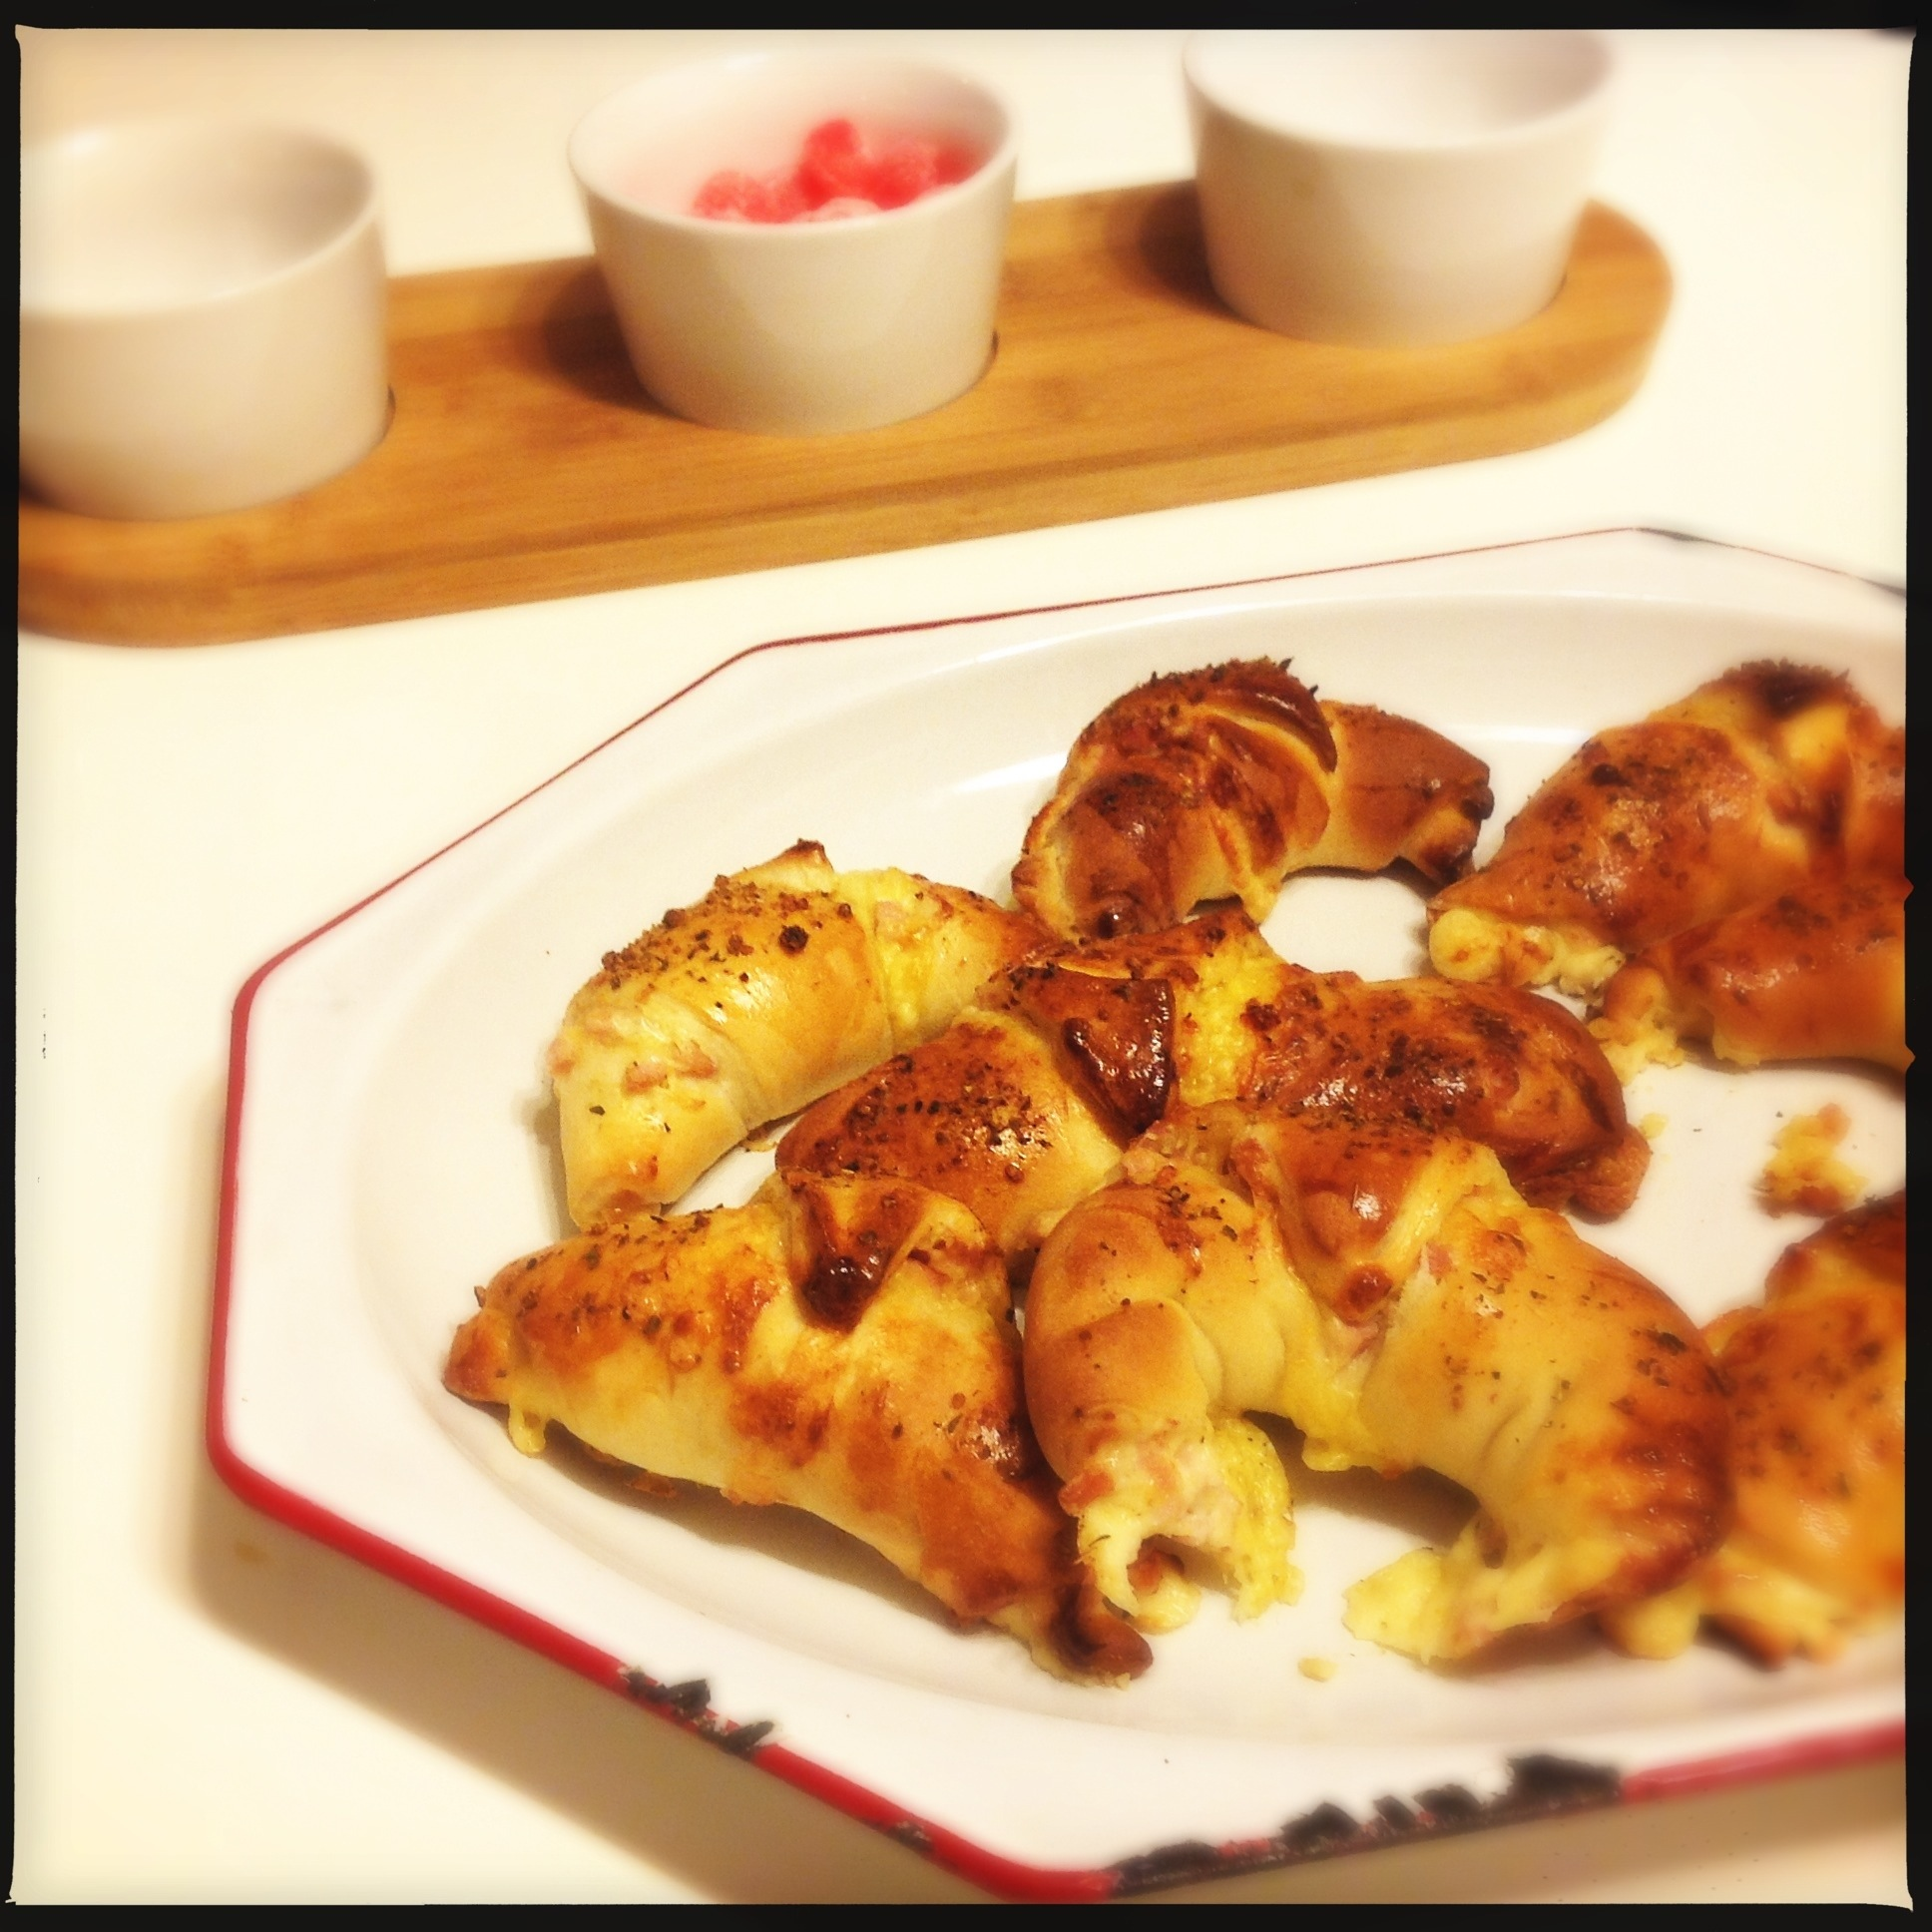 Hams Egg Cheesy Bread Roll: Cheesy Bread Rolls